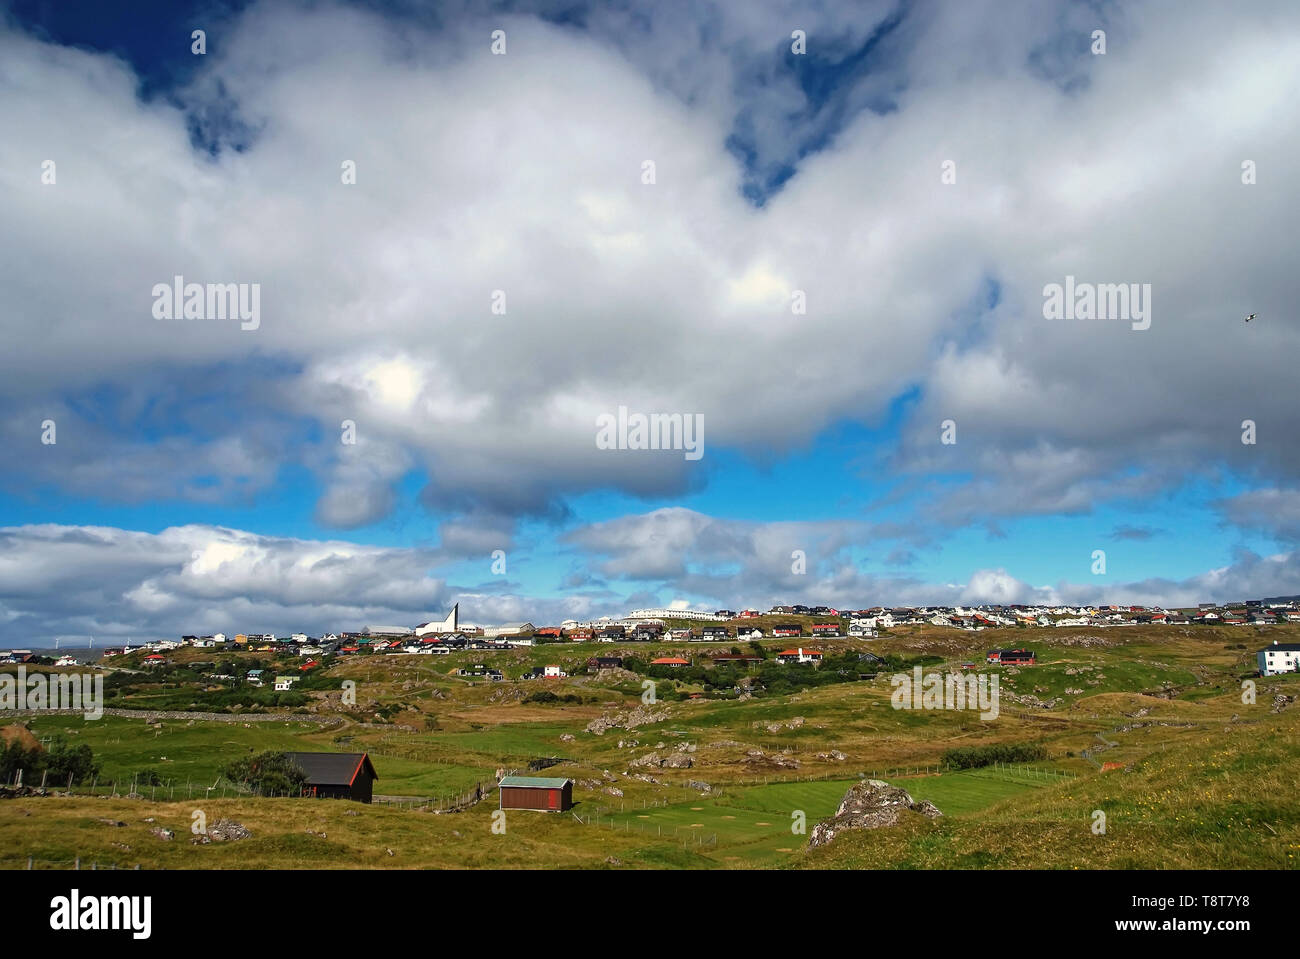 Country landscape with farmhouses under cloudy sky in Torshavn, Denmark. Beautiful landscape view. Hilly terrain with green grass. Overcast sky. Nature and environment. Summer vacation in countryside. - Stock Image